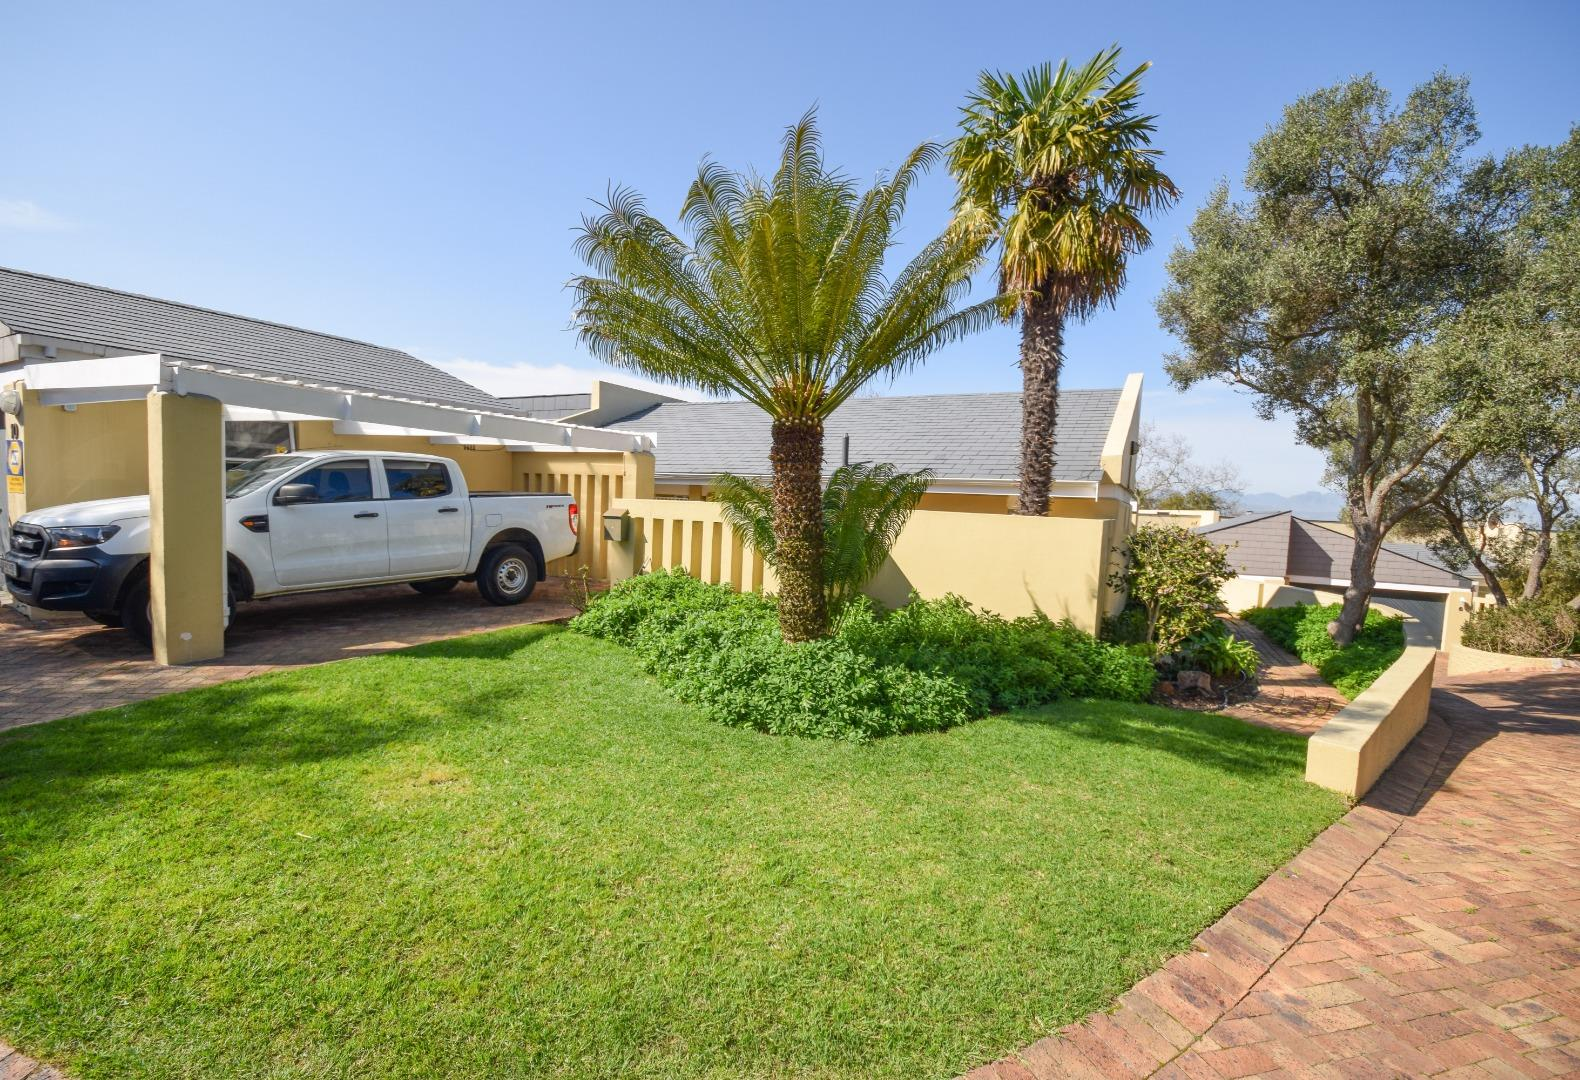 2 Bedroom Townhouse for Sale in Everglen, Durbanville - Western Cape